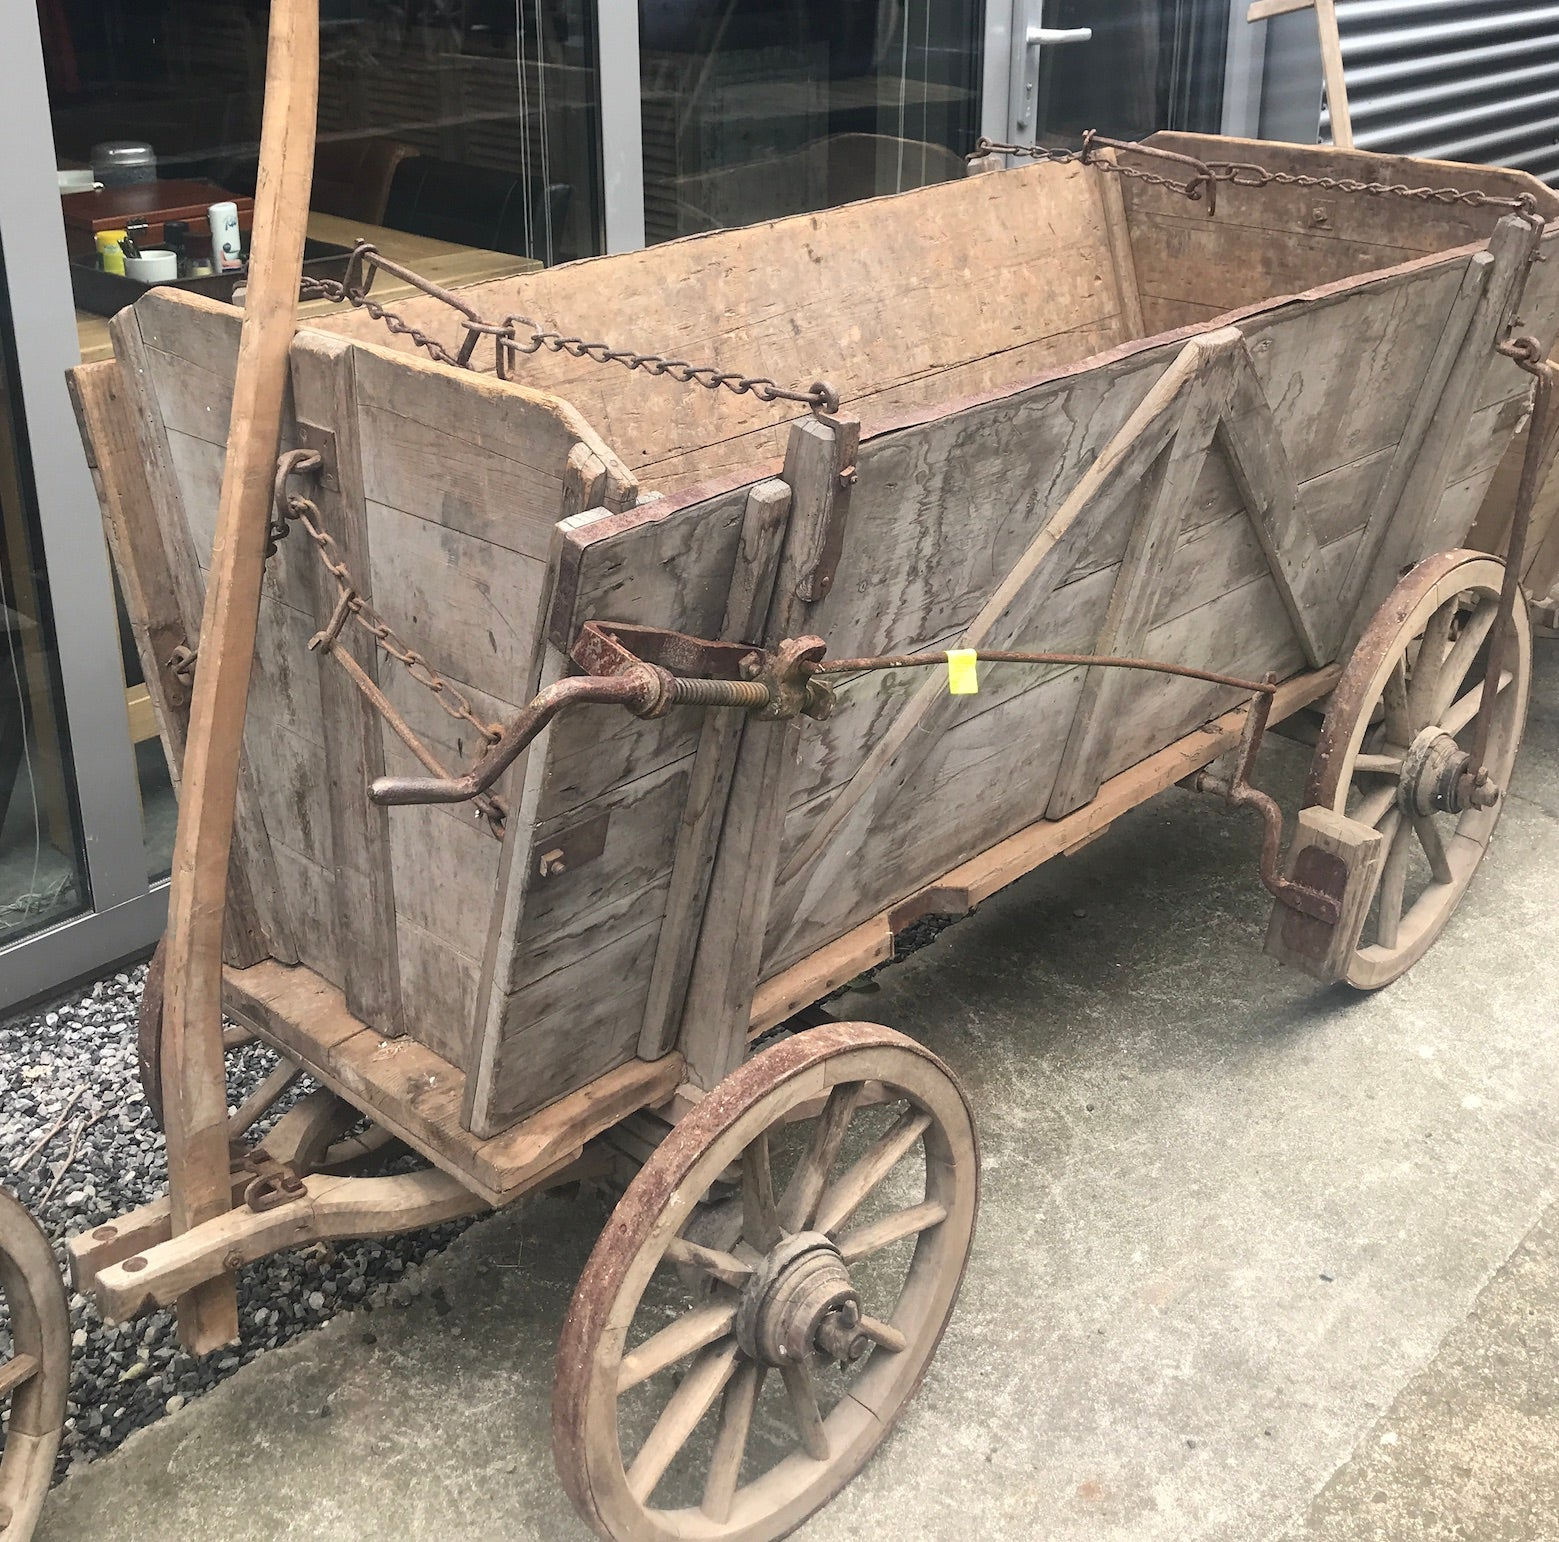 Vintage industrial European wooden pumpkin cart #2558 December container